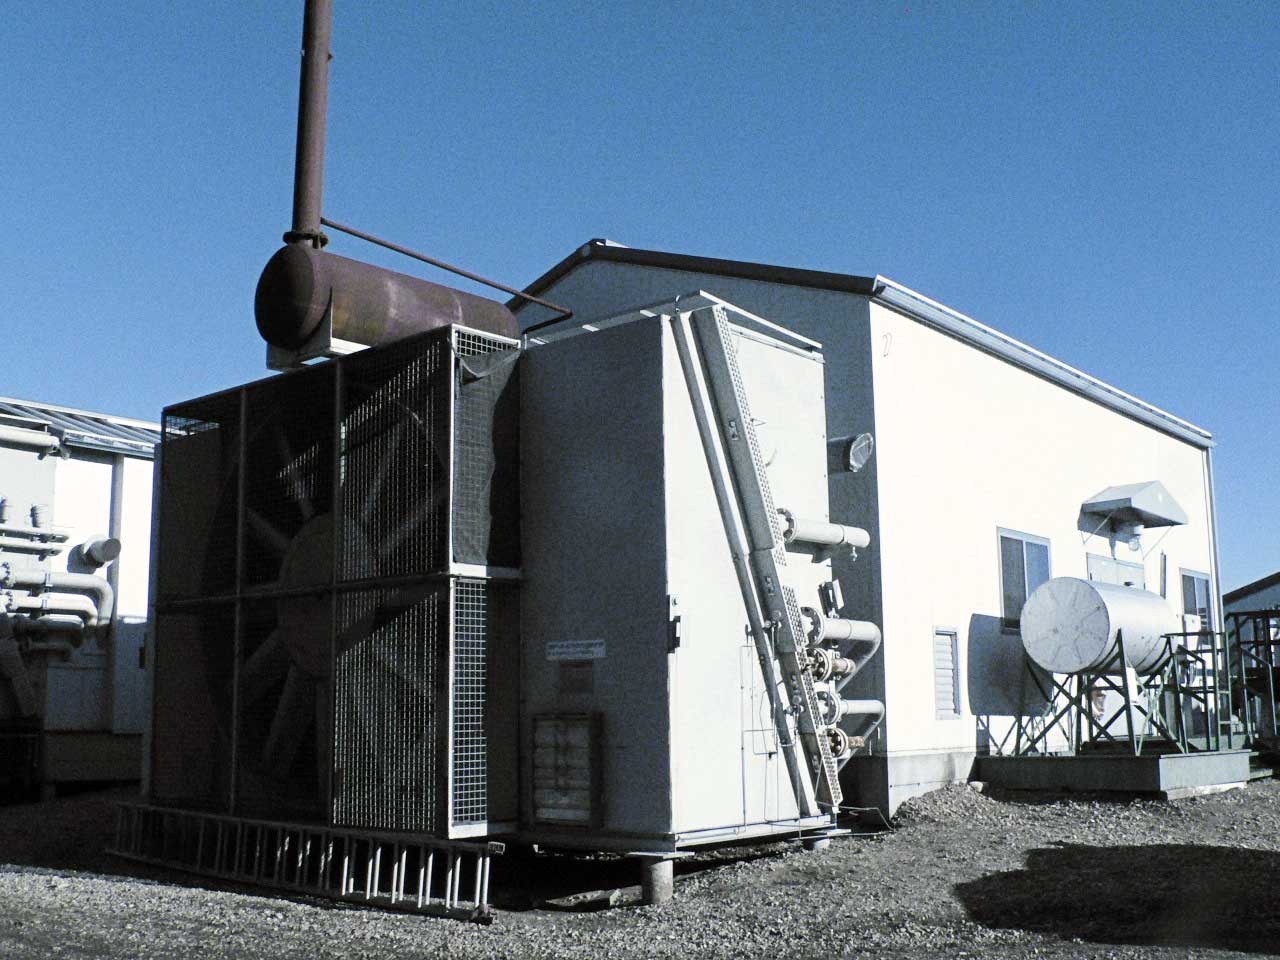 Used 1150HP CAT Reciprocating Compressor for sale in Alberta